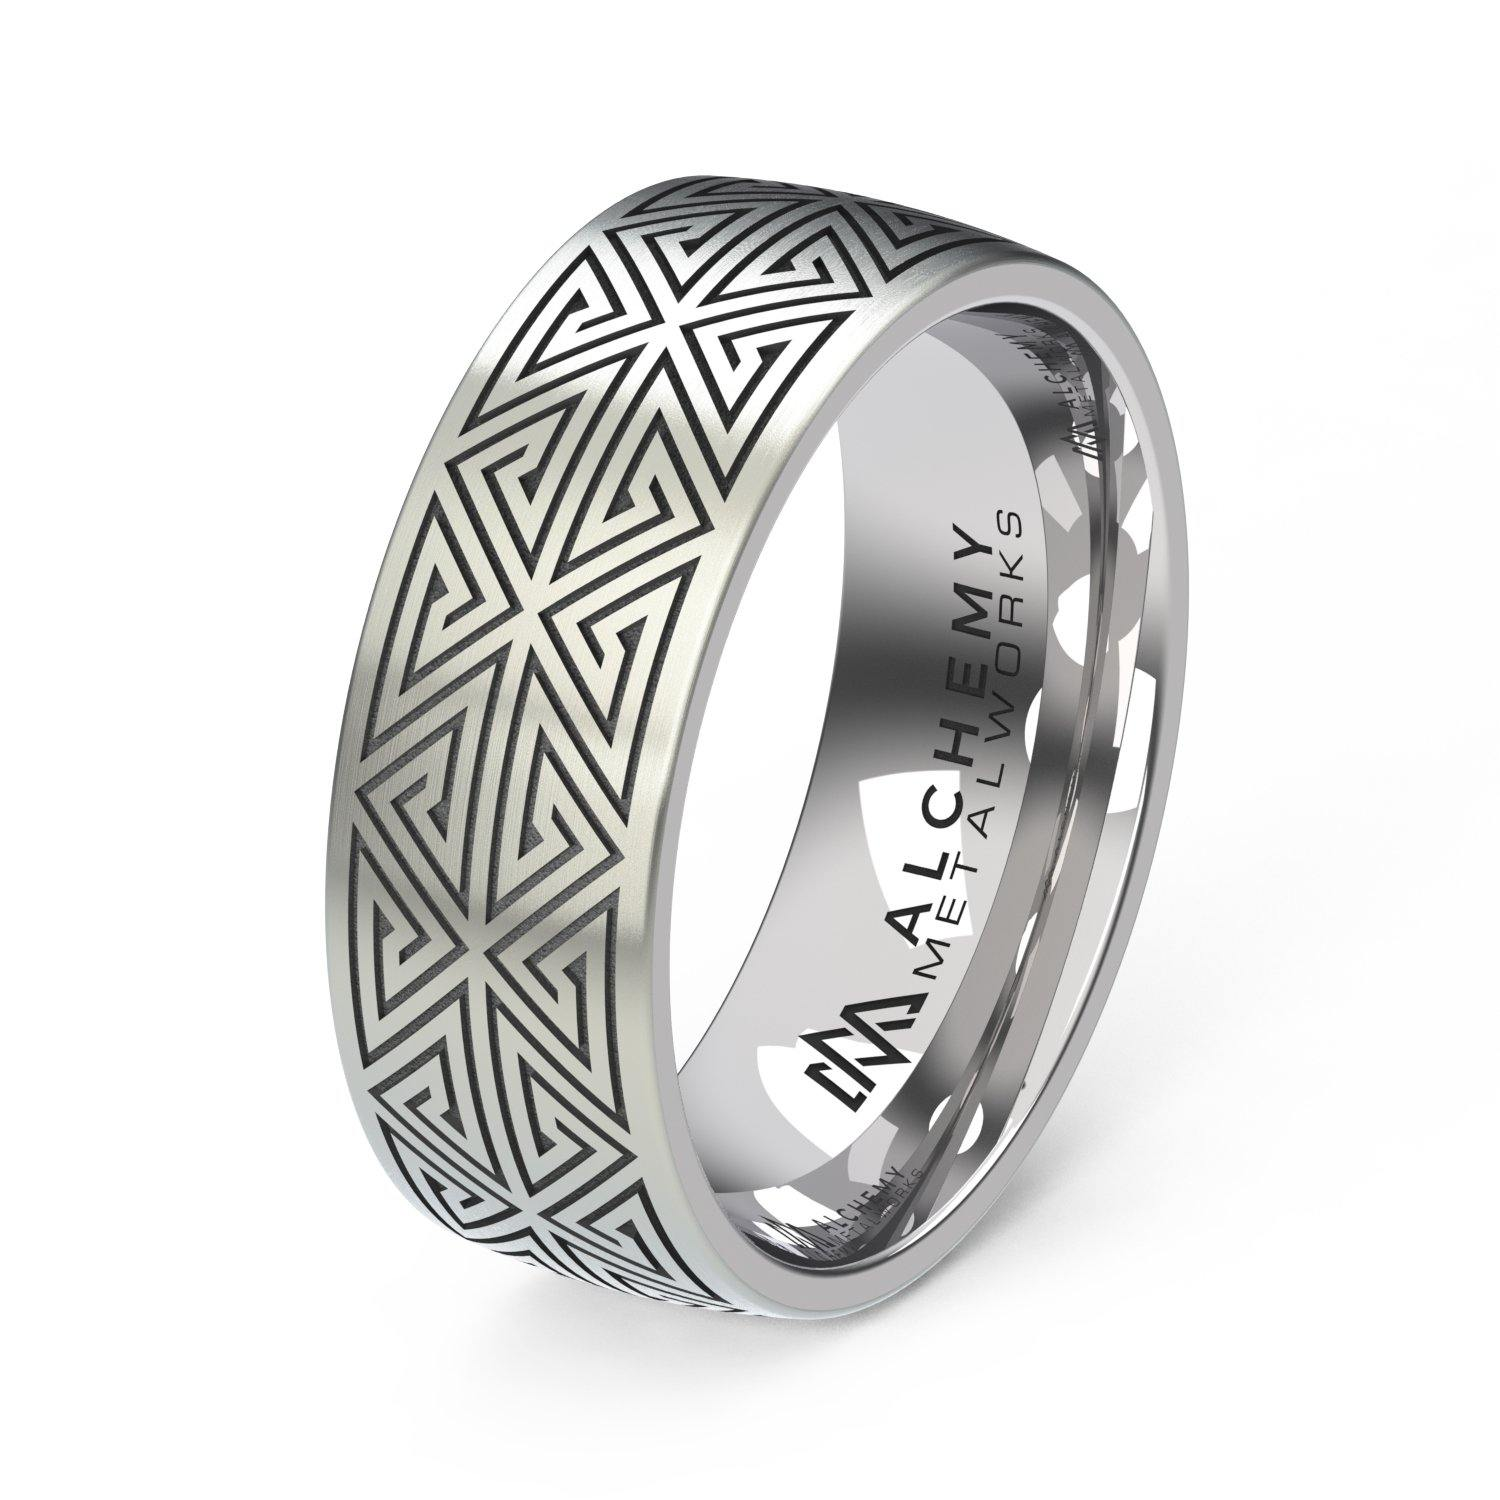 Laser Engraved Titanium Ring - Labyrinth